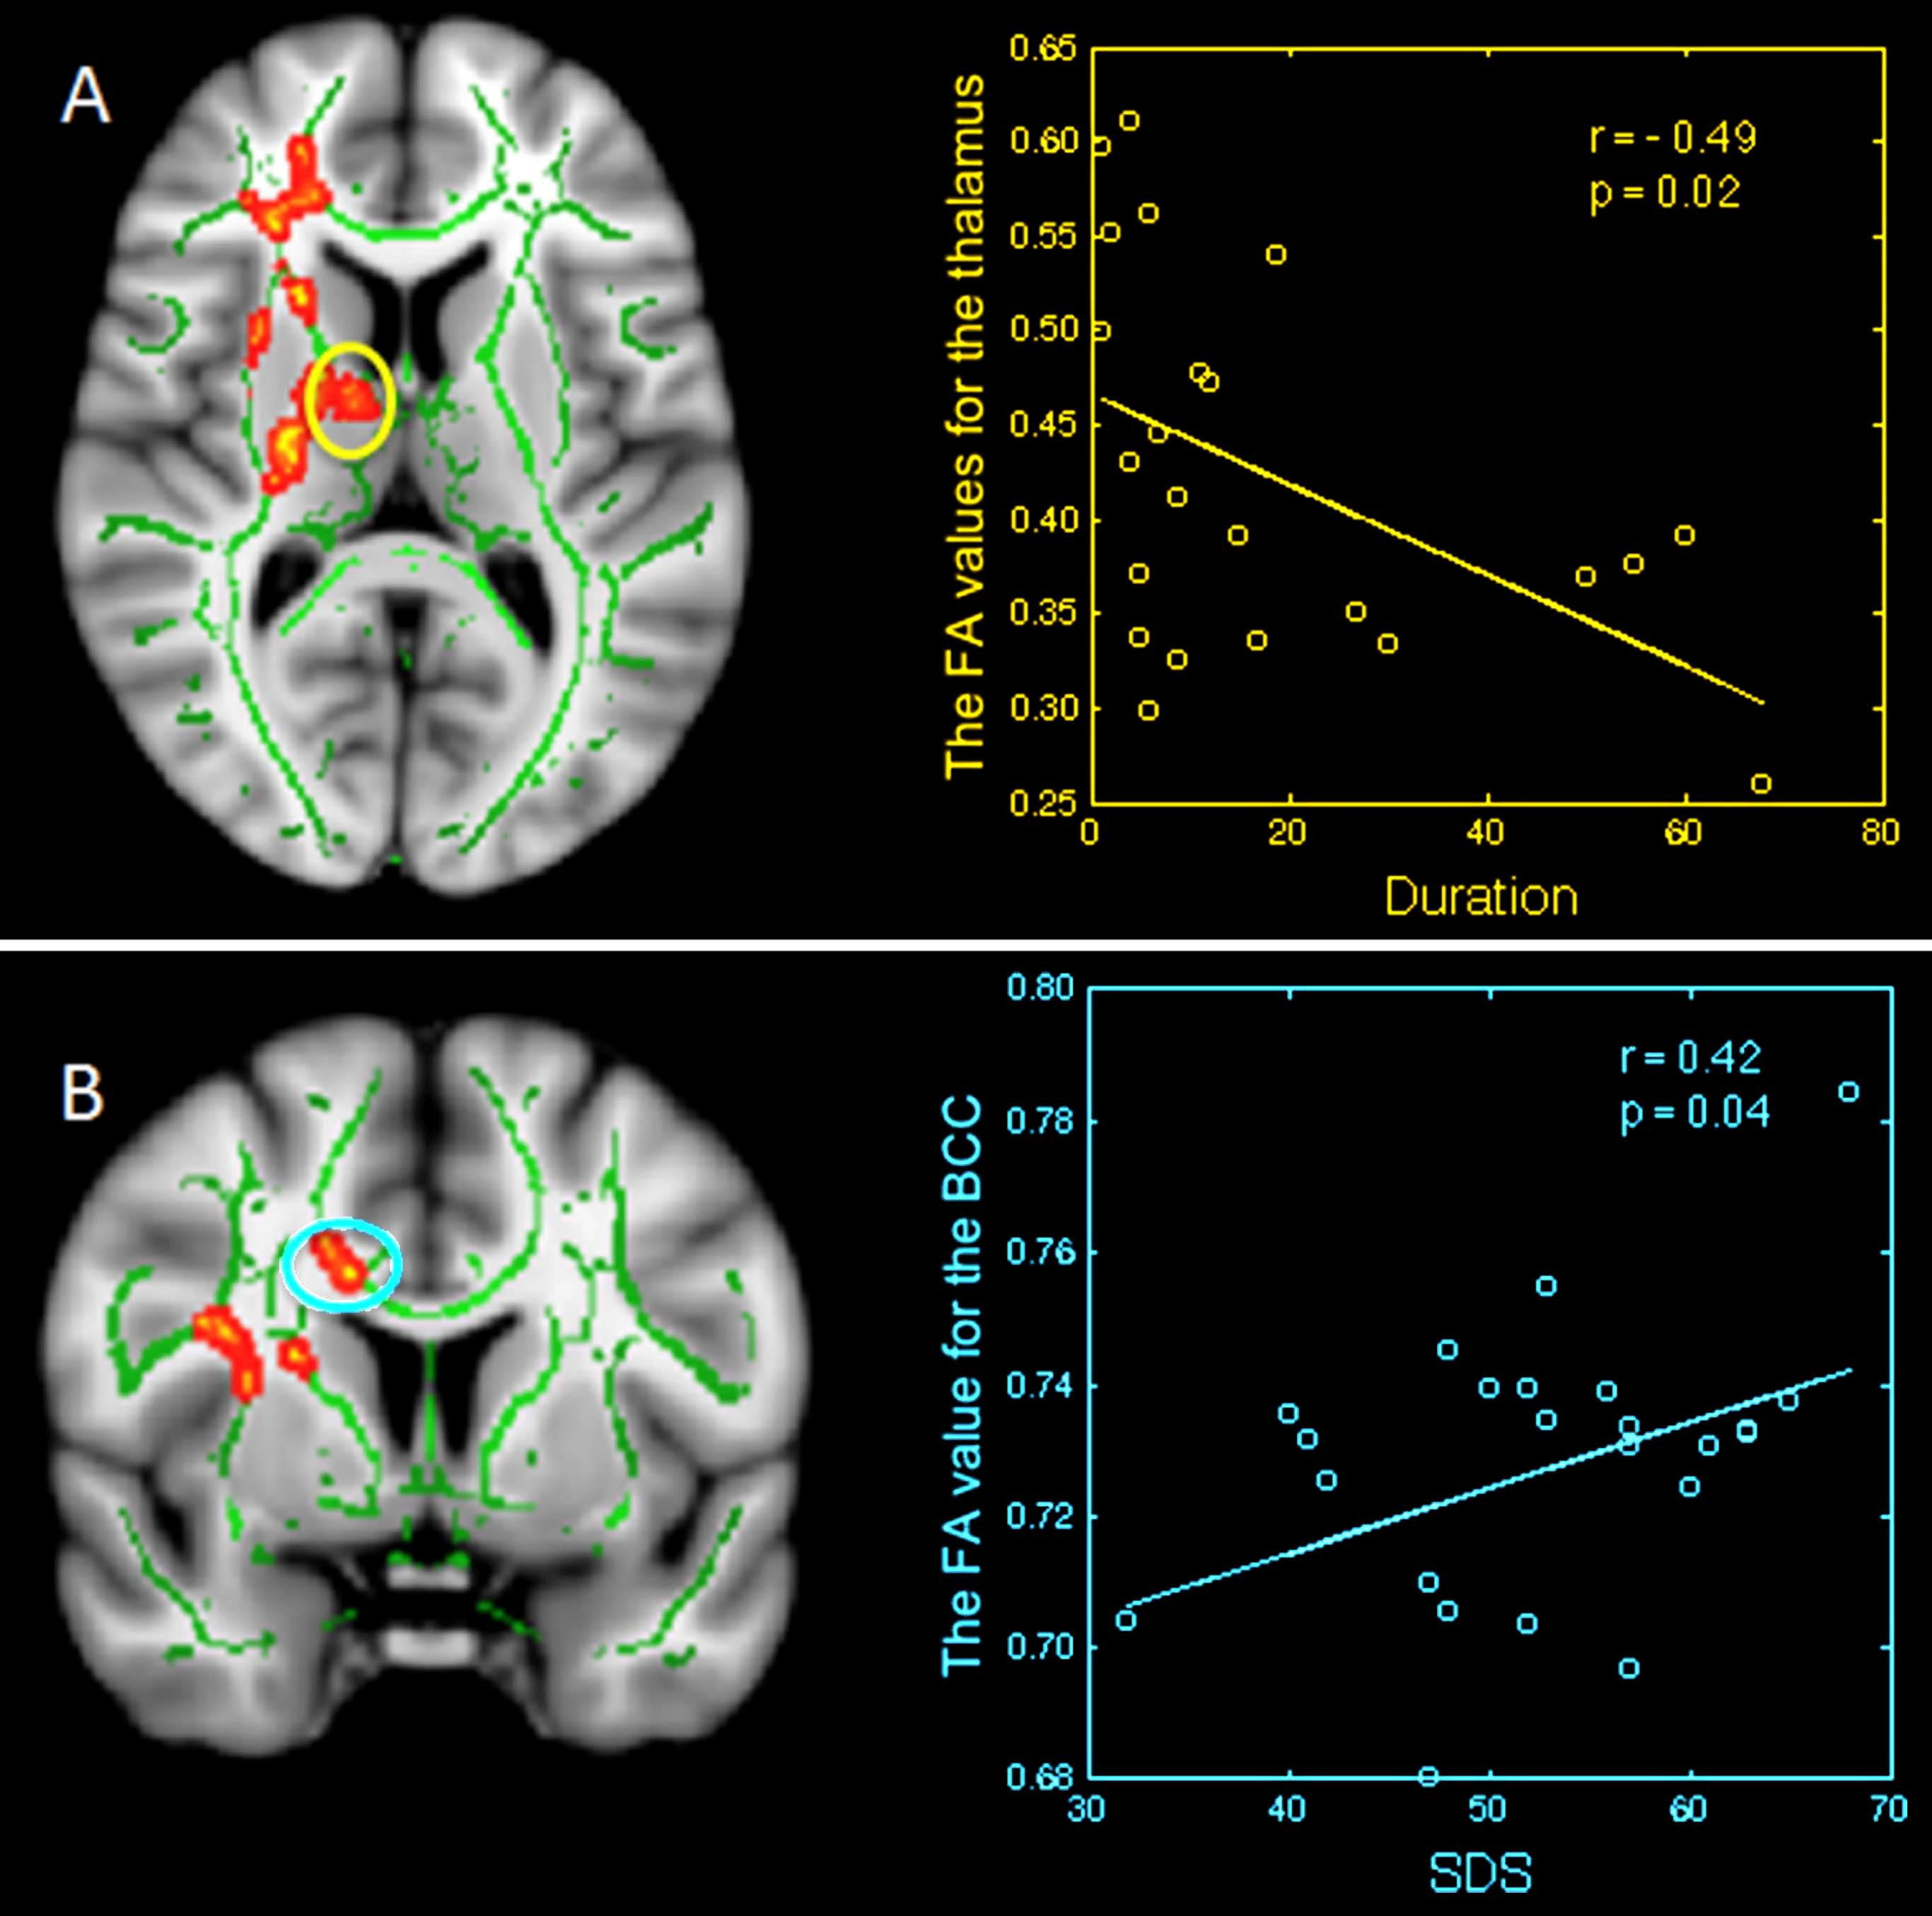 Image: Images on the left display region-of-interest maps of the relationship between mean FA and disease duration, and clinical features in primary insomnia, while the corresponding graphs are displayed on the right (Photo courtesy of RSNA).